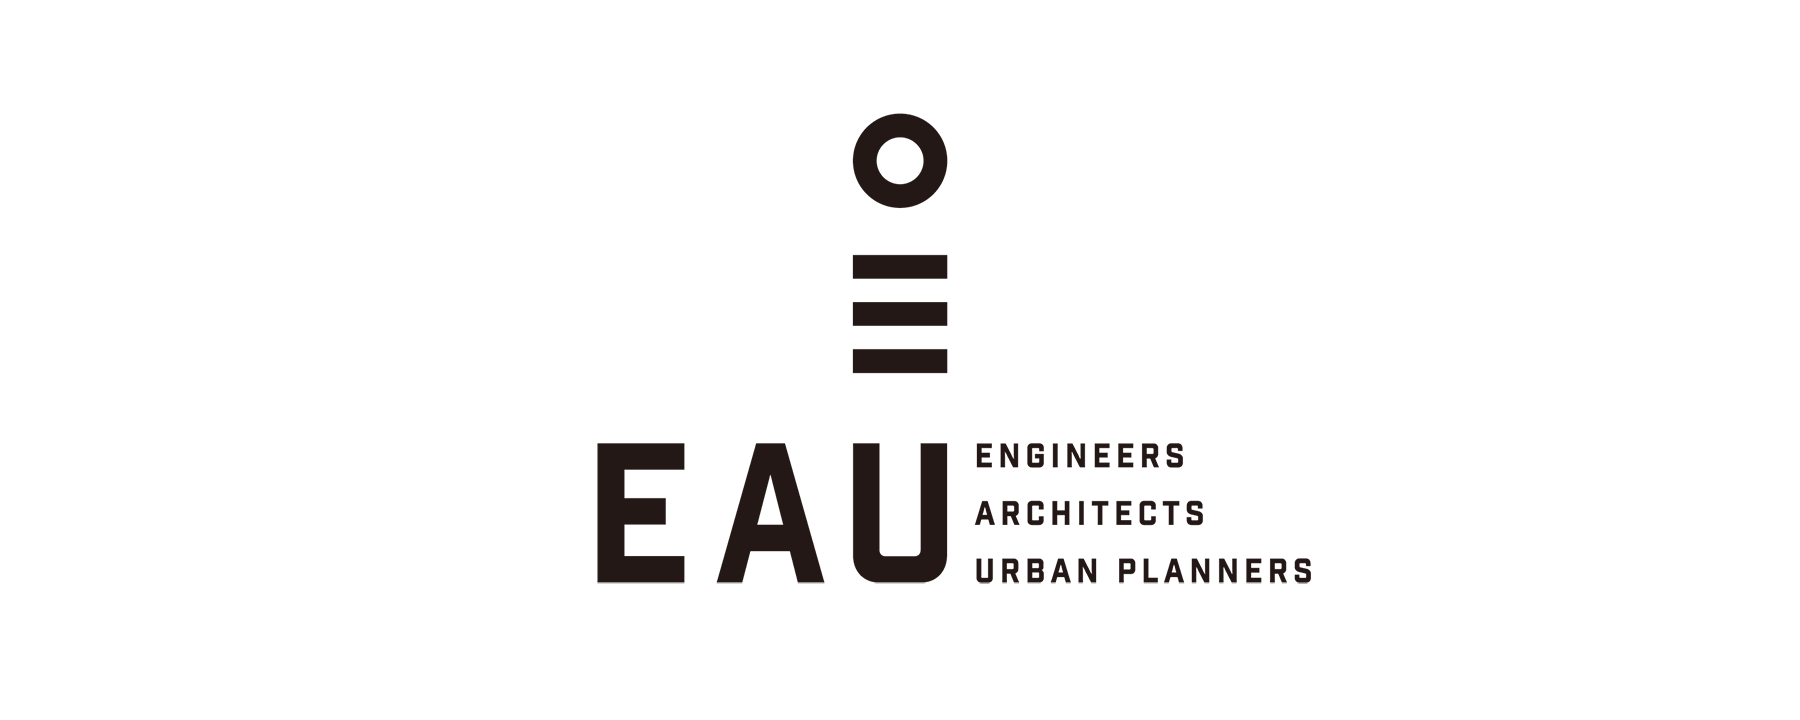 EAU engineers architects urban planners